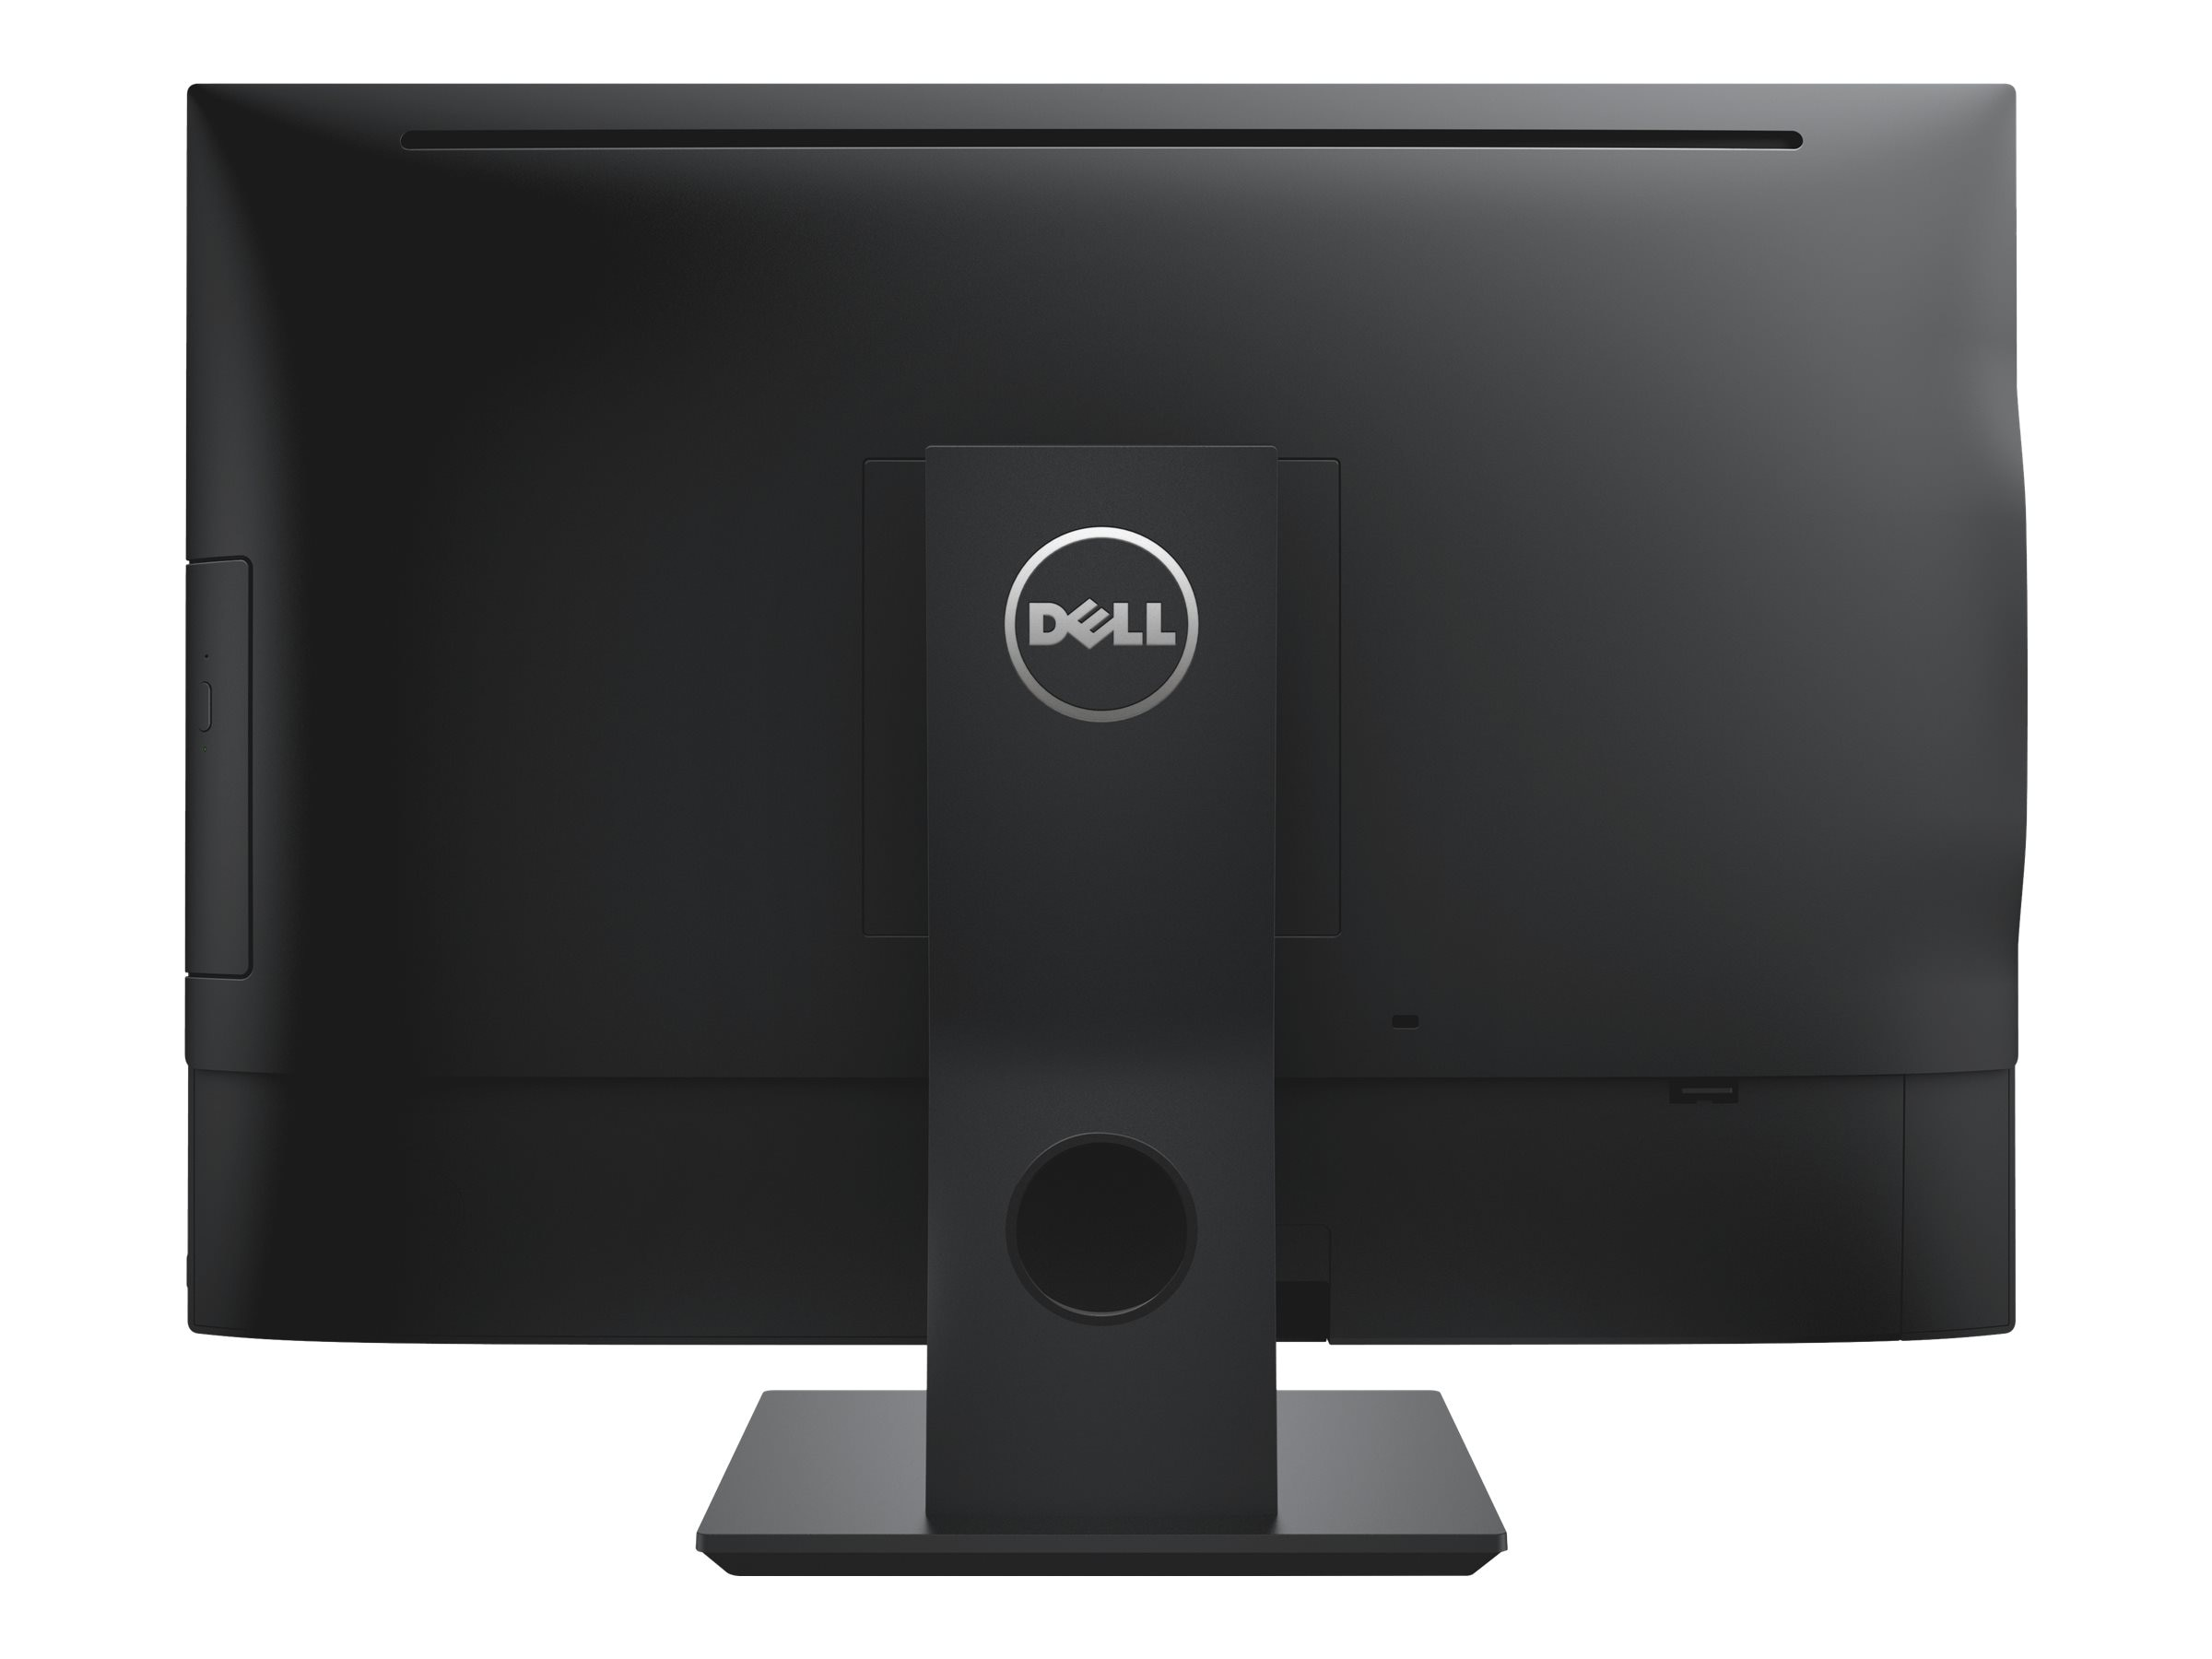 Dell OptiPlex 7440 AIO Core i5-6500 3.2GHz 8GB 500GB DVD+RW GbE ac BT 23.8 FHD Touch W10P64, FCMG6